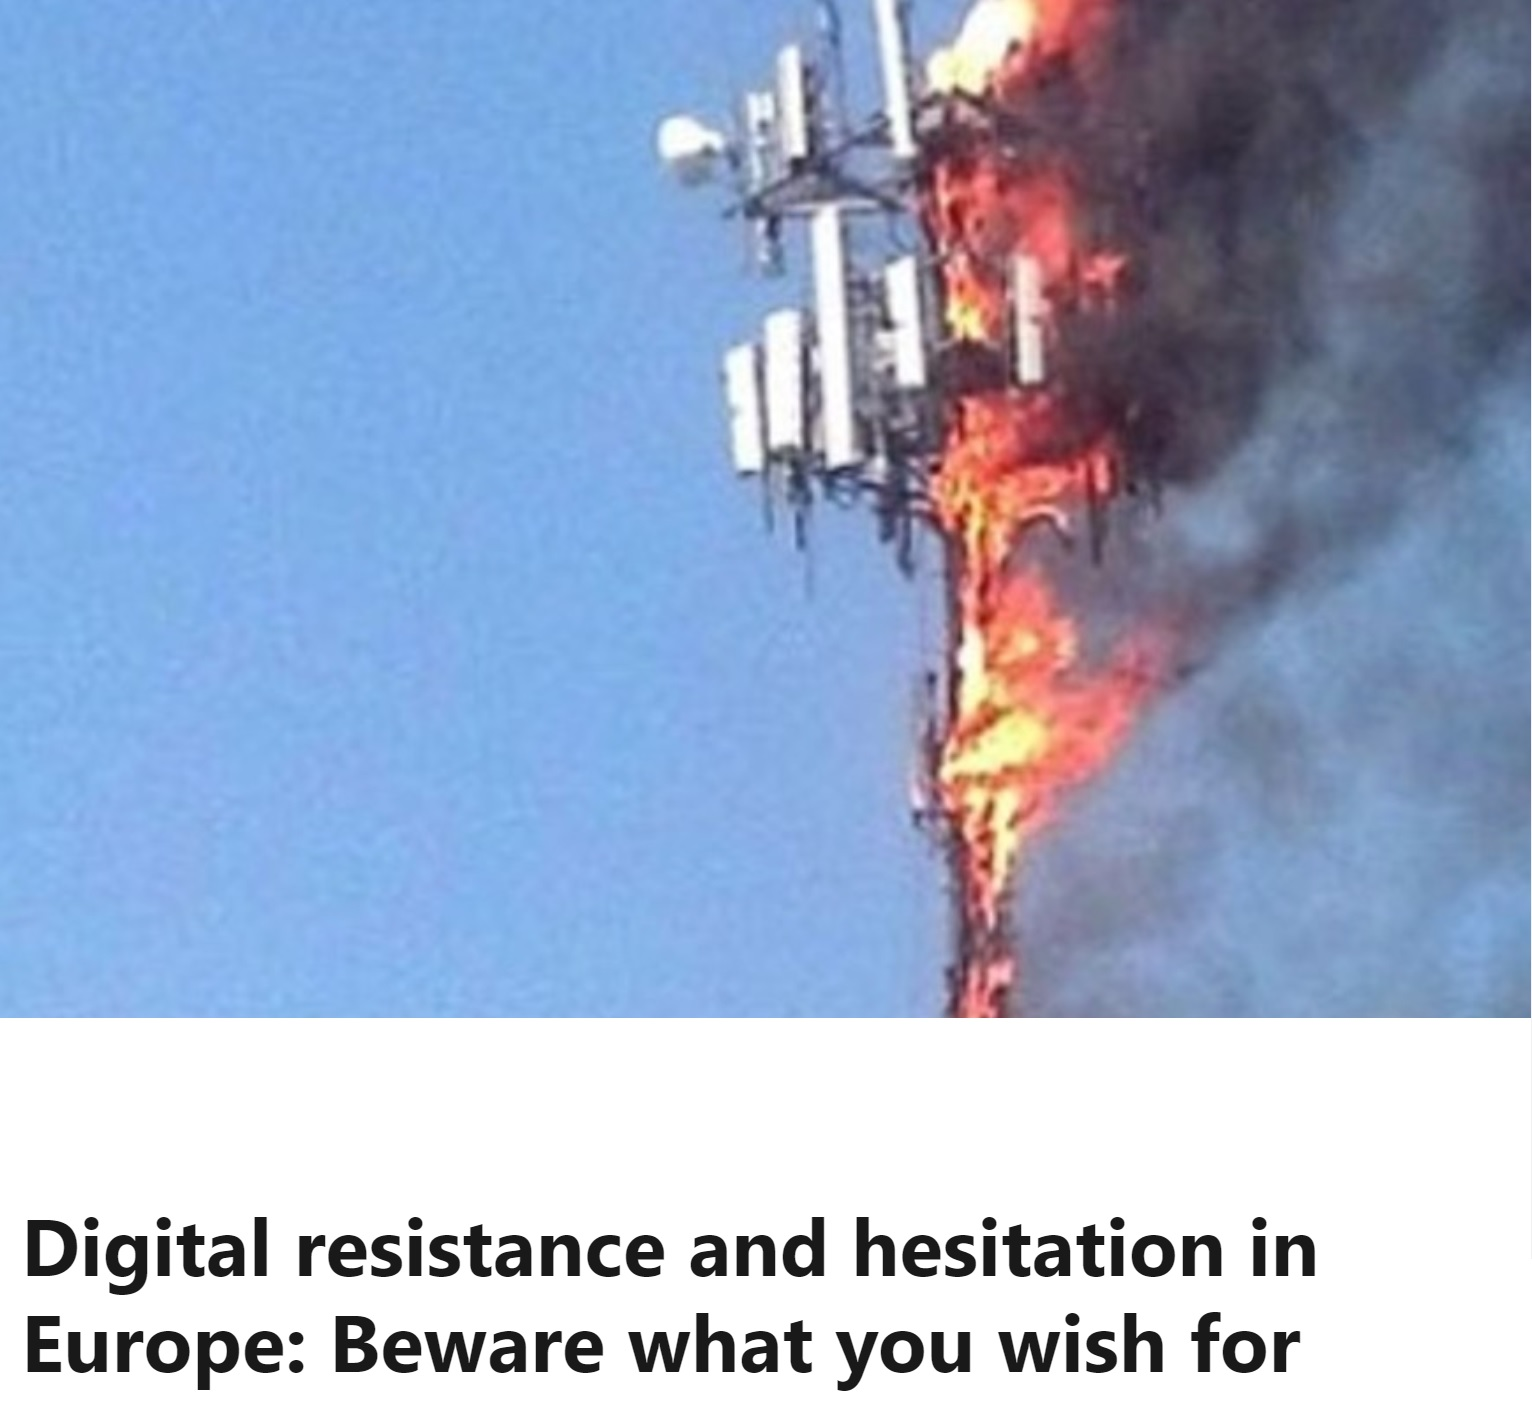 Digital resistance and hesitation in Europe: Beware what you wish for (on LinkedIn)